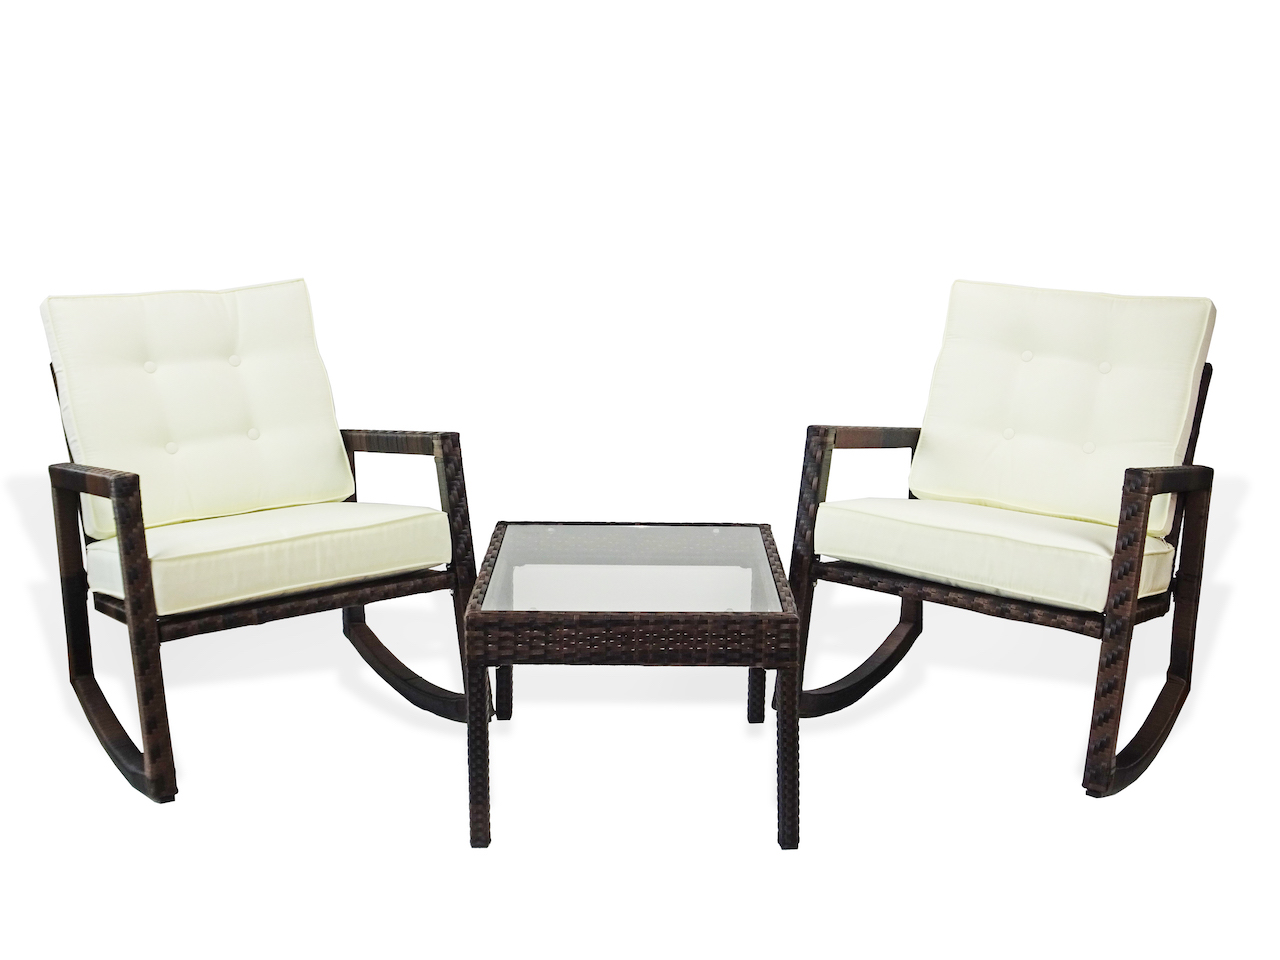 coffee table with chairs double papasan chair replacement cushion buy patio 3 pc lounge set rocking and